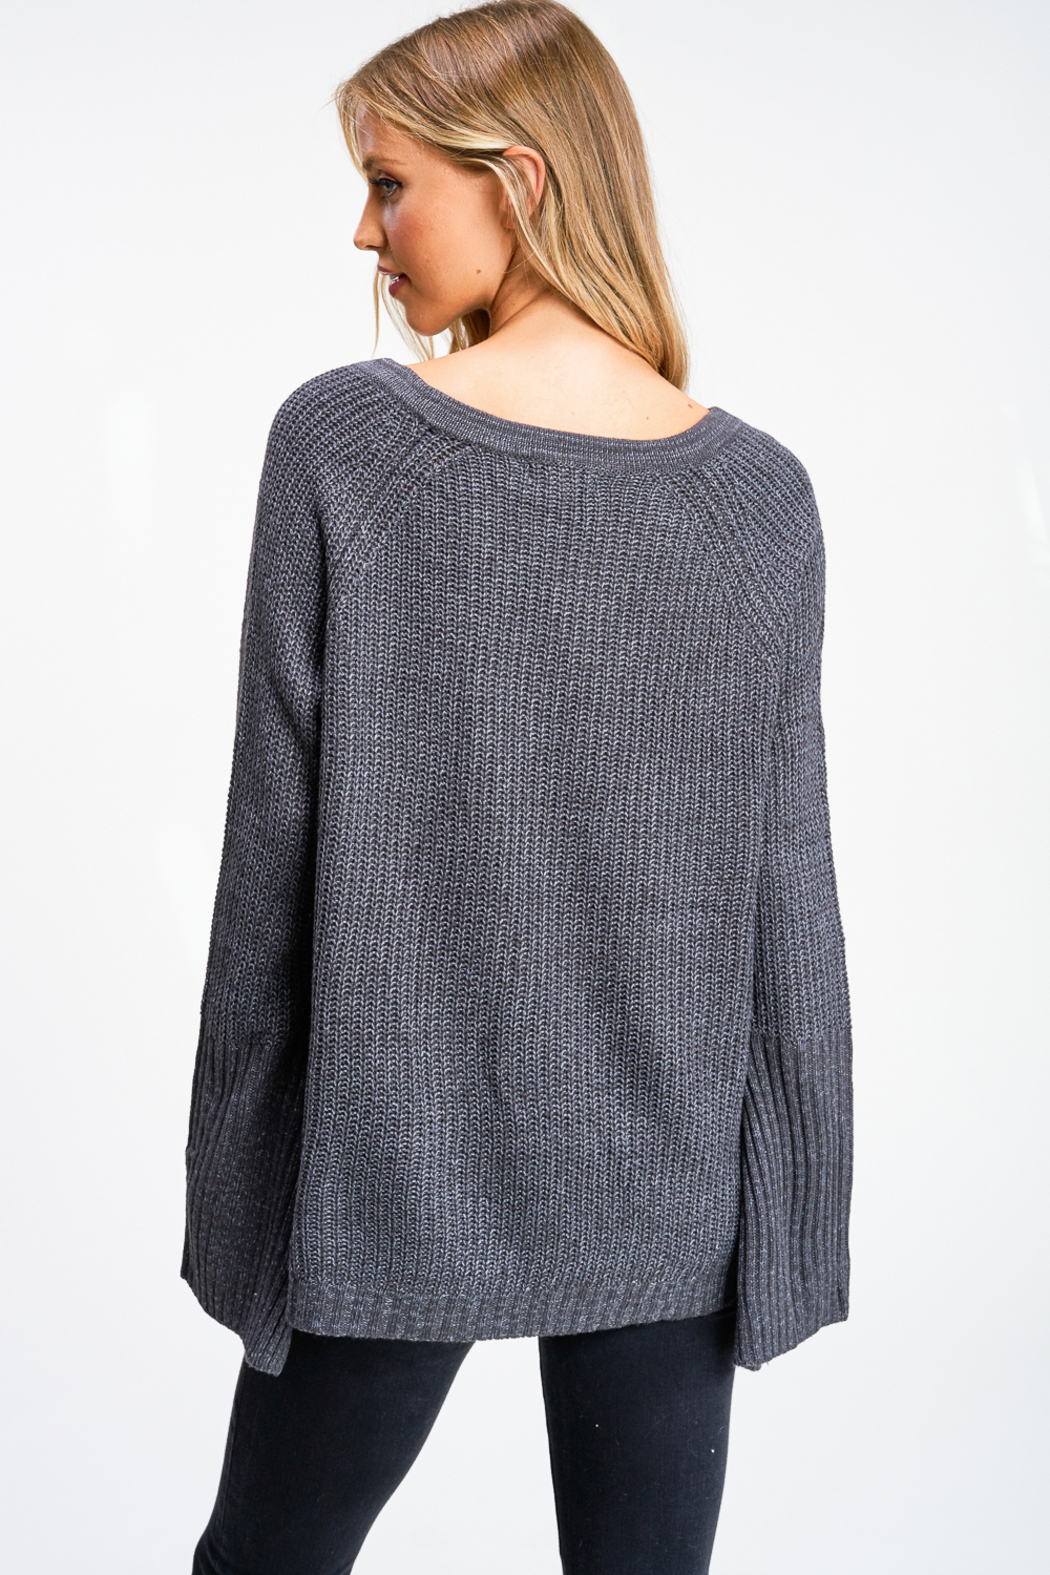 MONTREZ Bell sleeve lace up ribbed sweater - Back Cropped Image